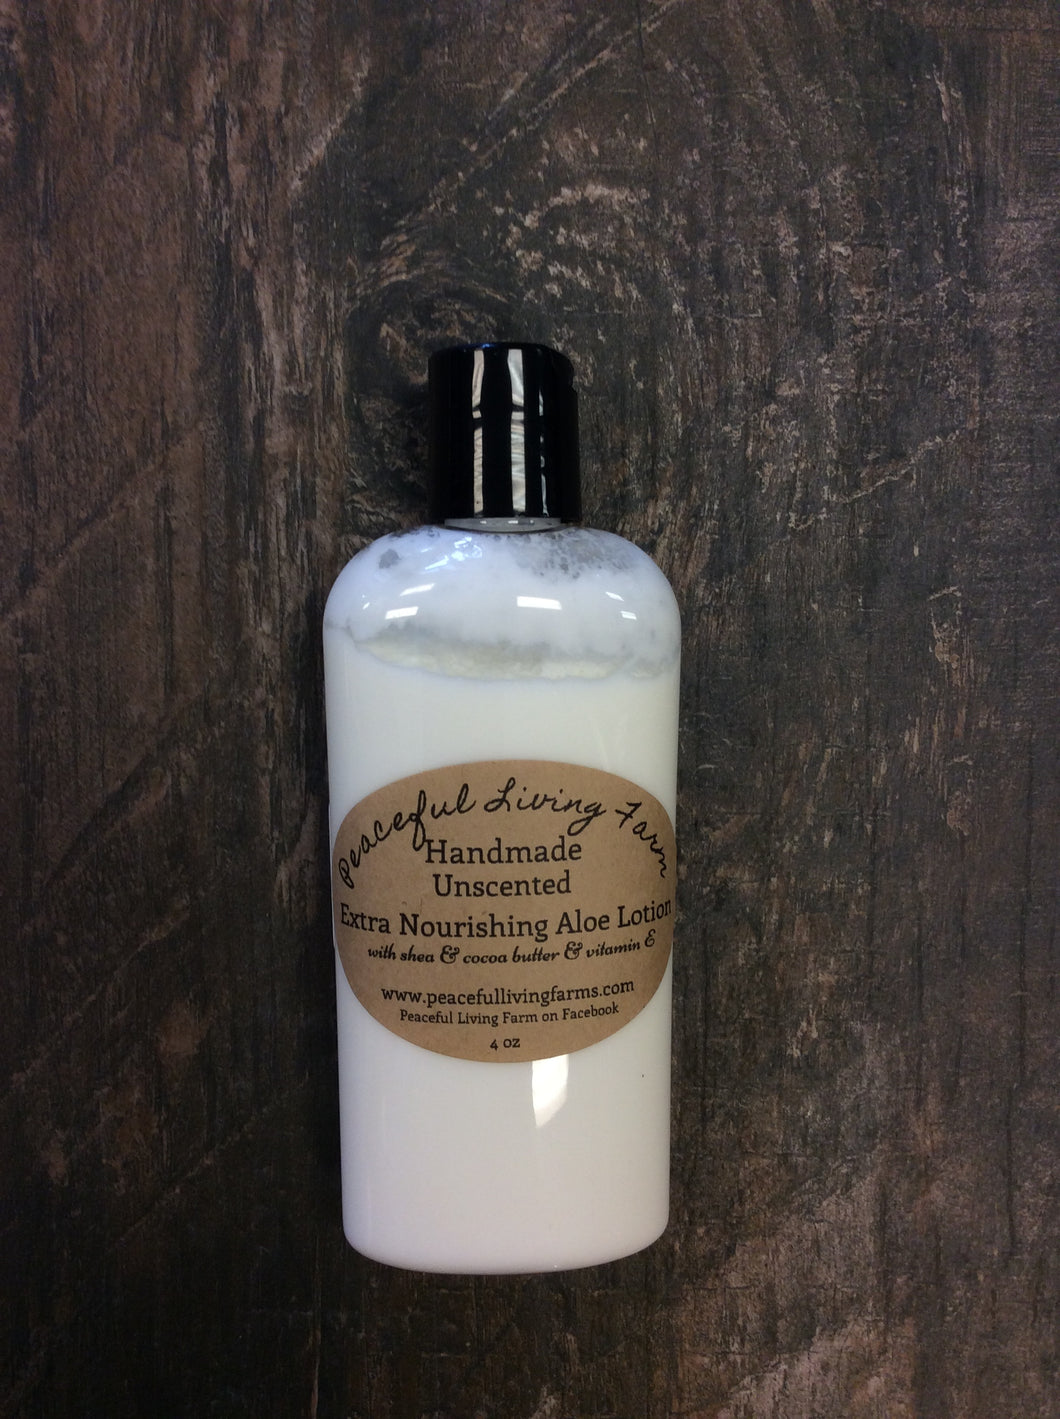 Handmade Unscented Extra Nourishing Aloe Lotion